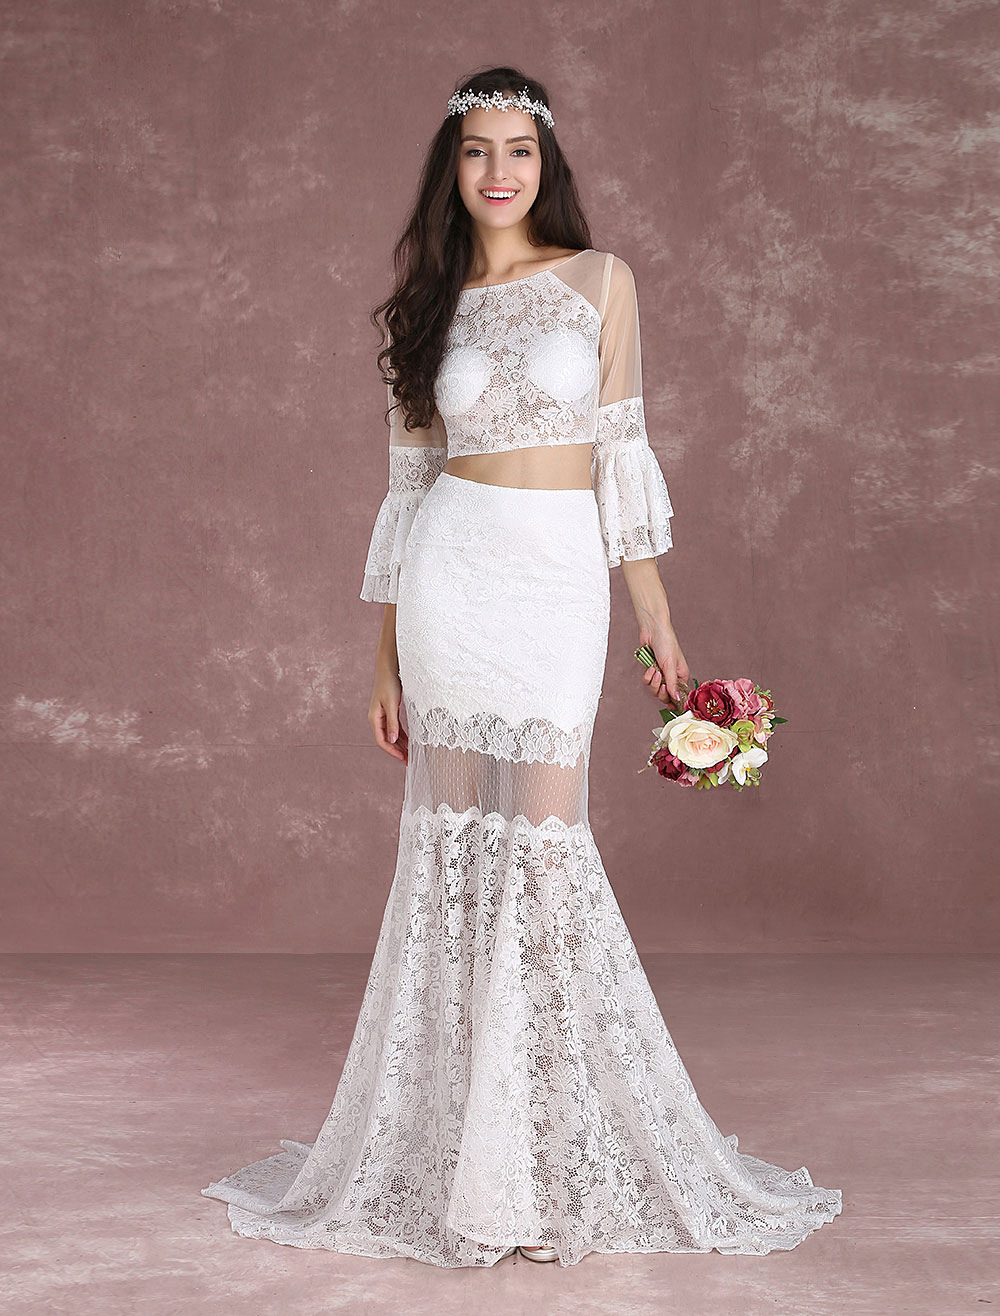 f82c737396 Crop Top Wedding Dresses 2019 Boho Beach Summer Bridal Dress Lace ...